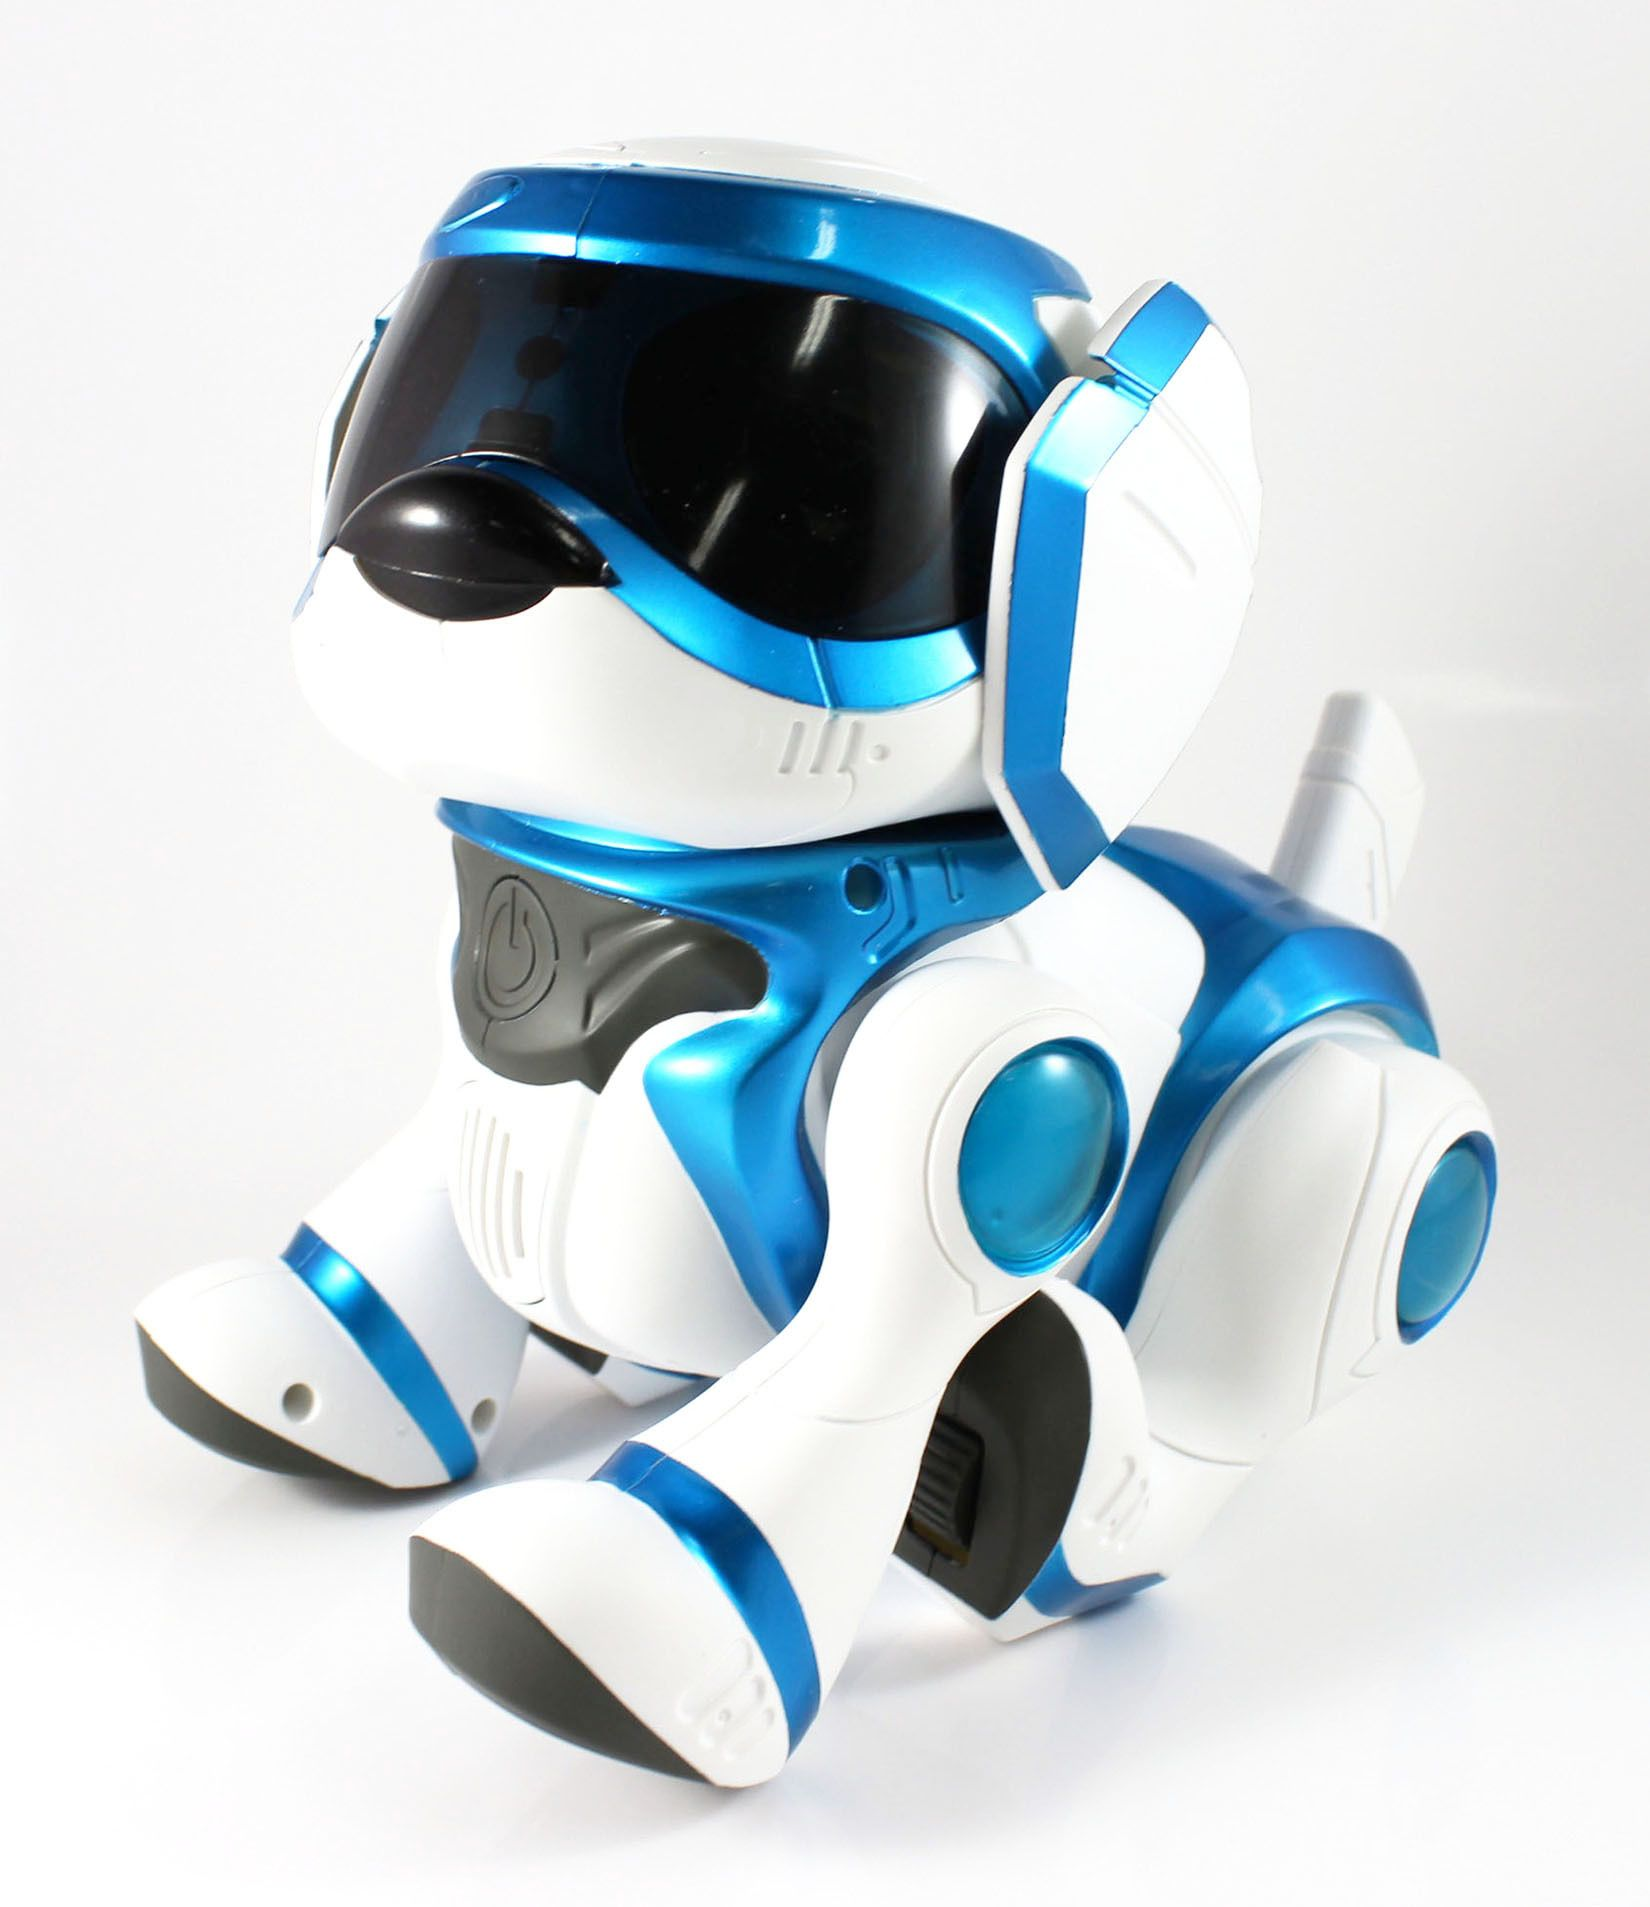 Tekno The Robotic Puppy Robot Dog Ideas Pinterest Toys Robot